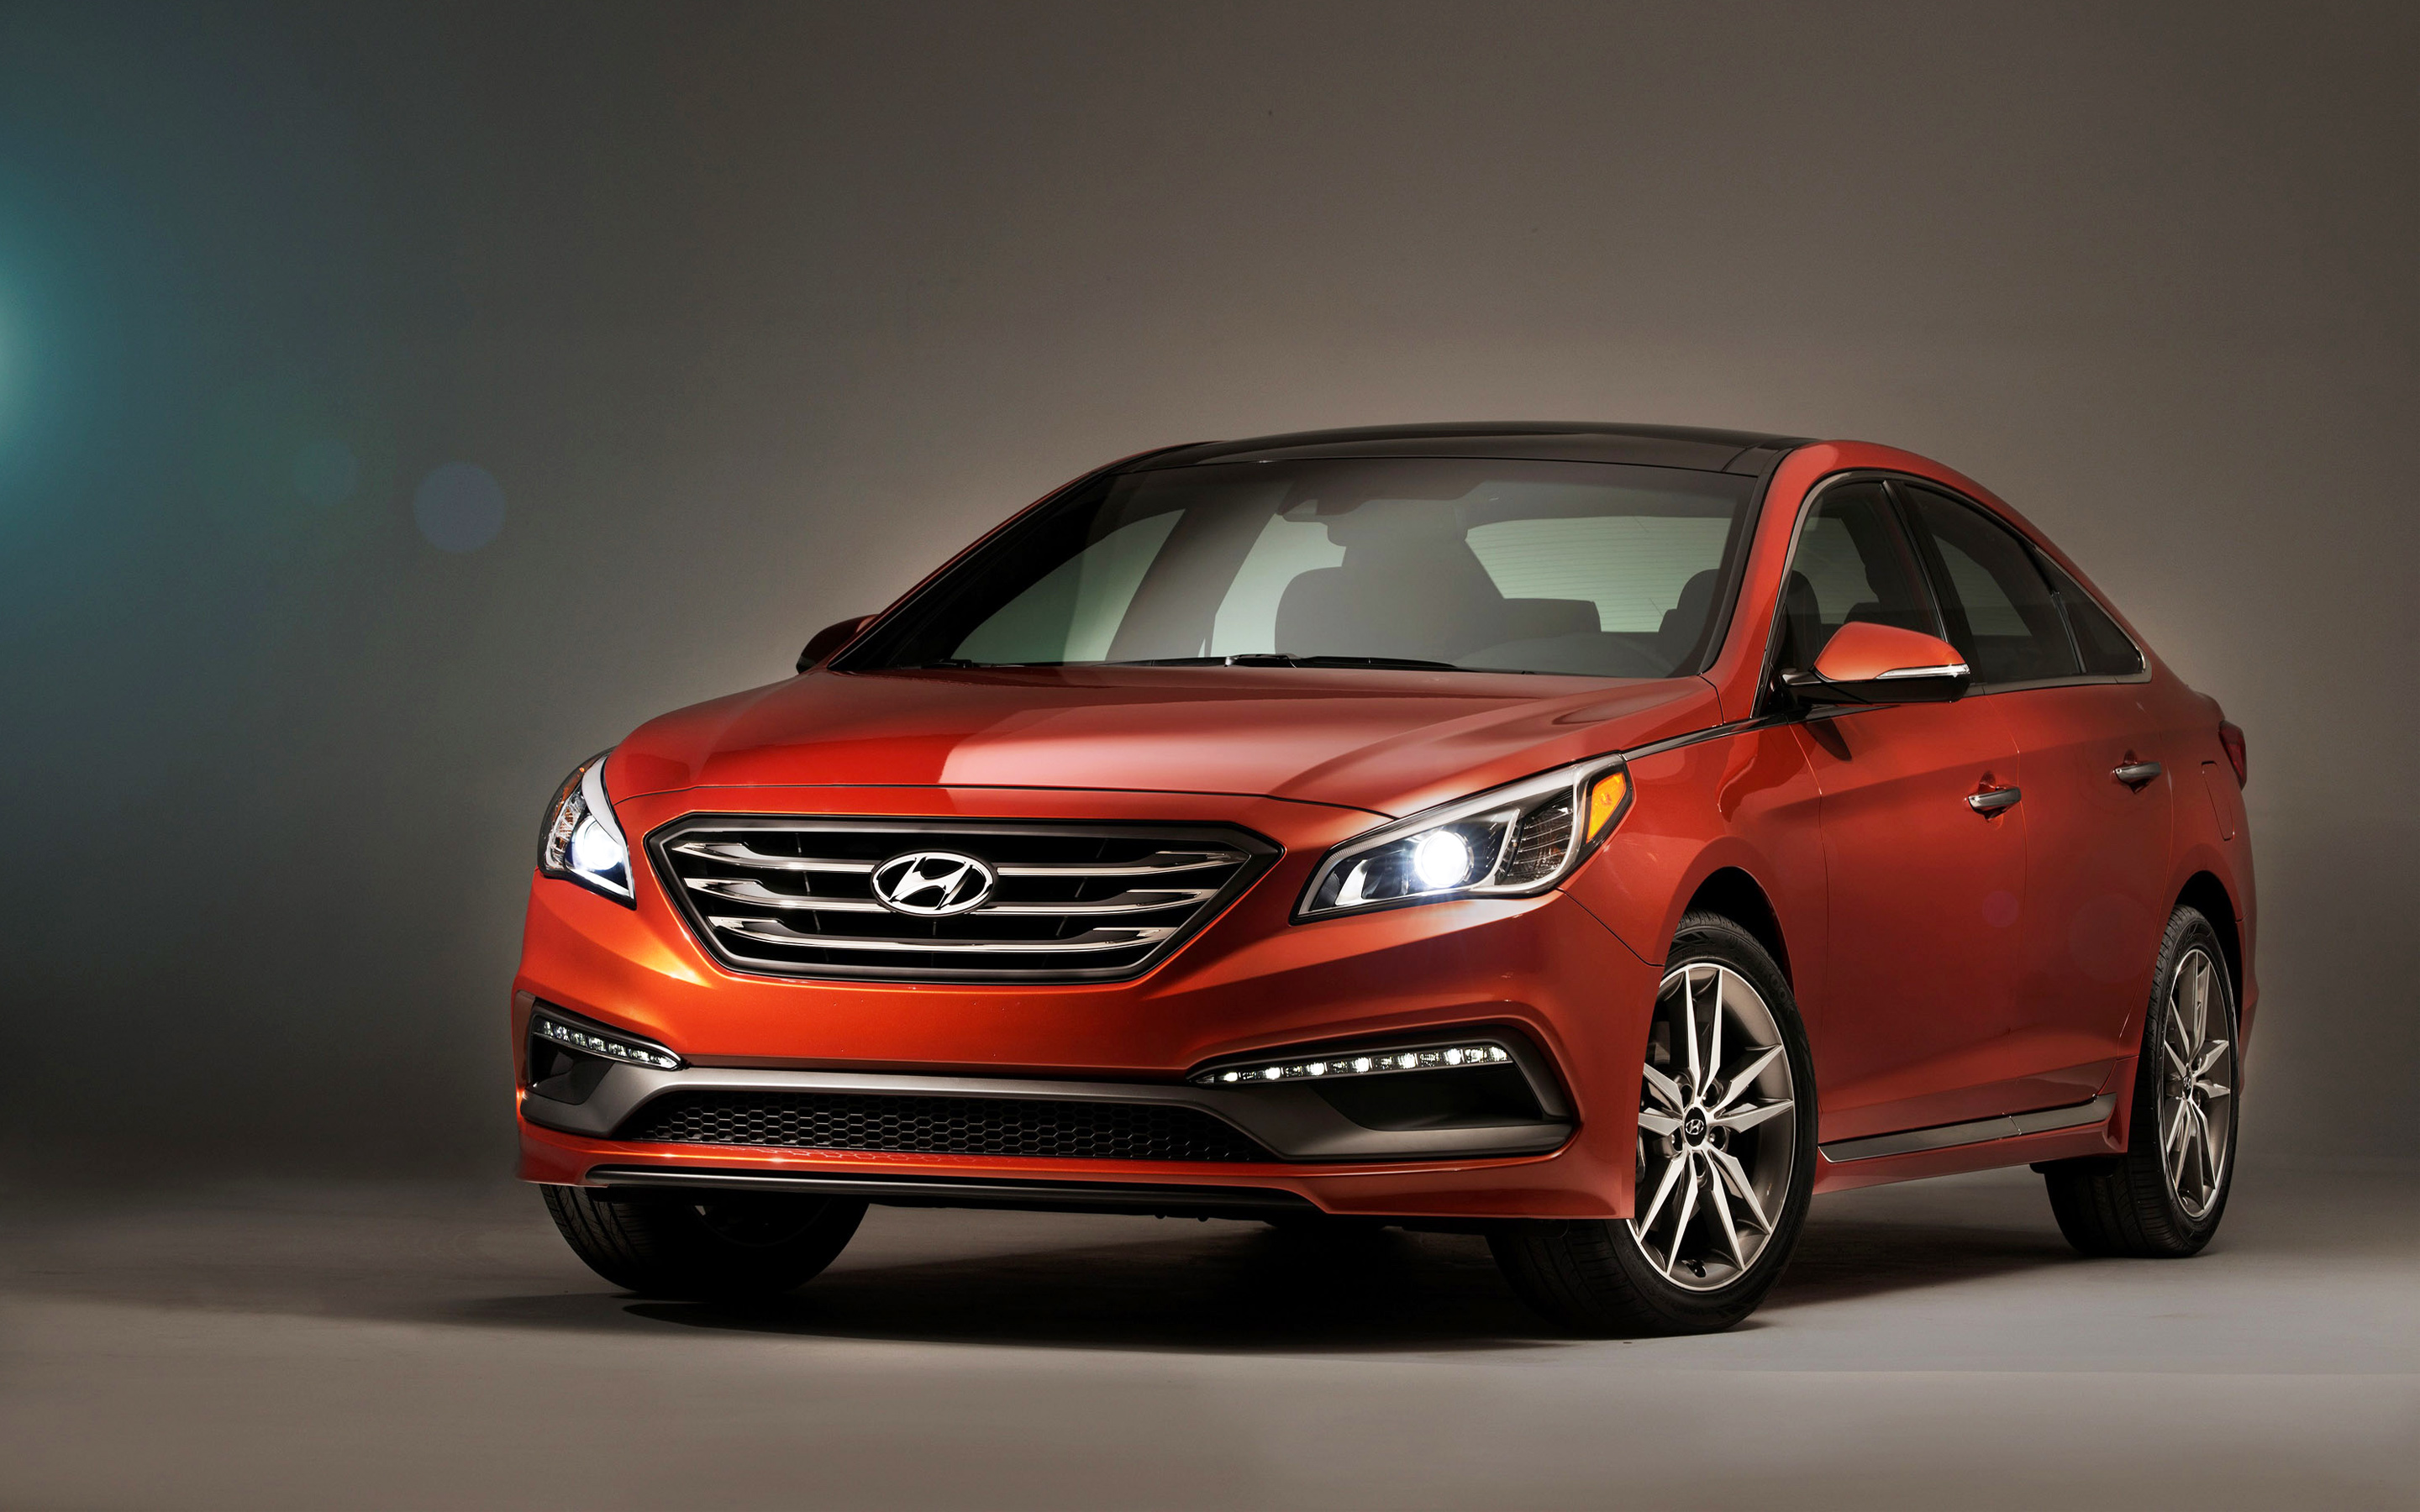 2015 Hyundai Sonata Wallpaper | HD Car Wallpapers | ID #4643